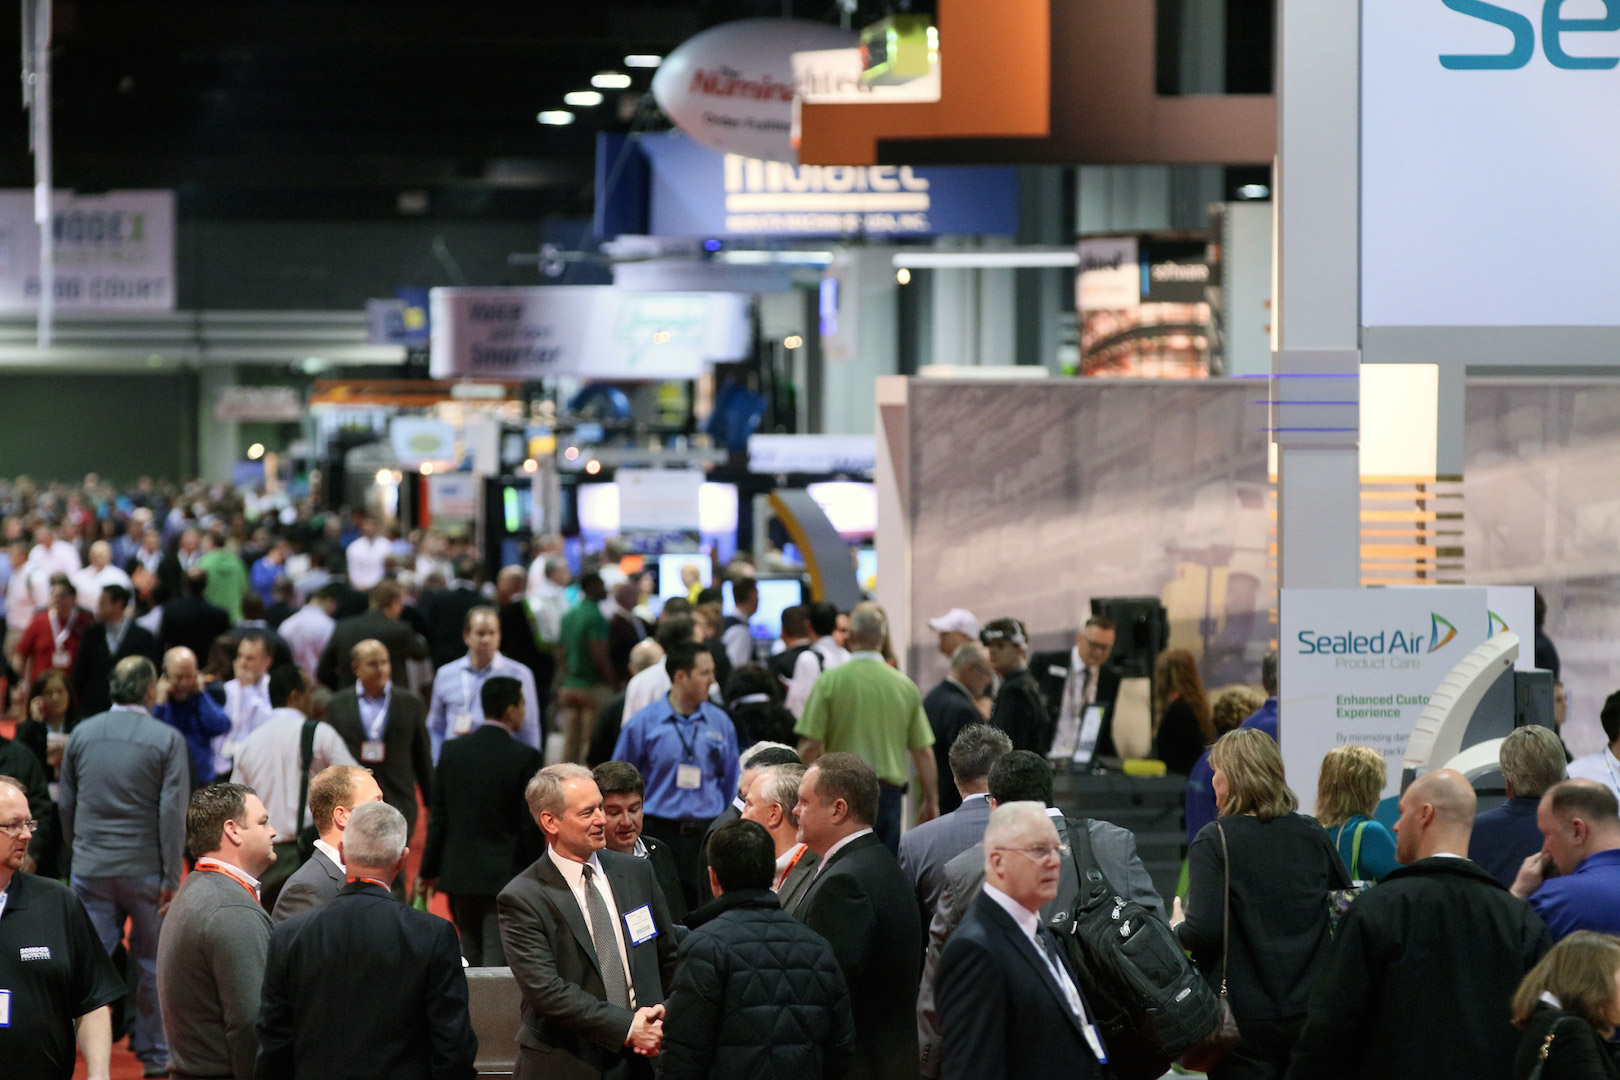 A journalist might visit 50+ exhibits over the course of a trade show.